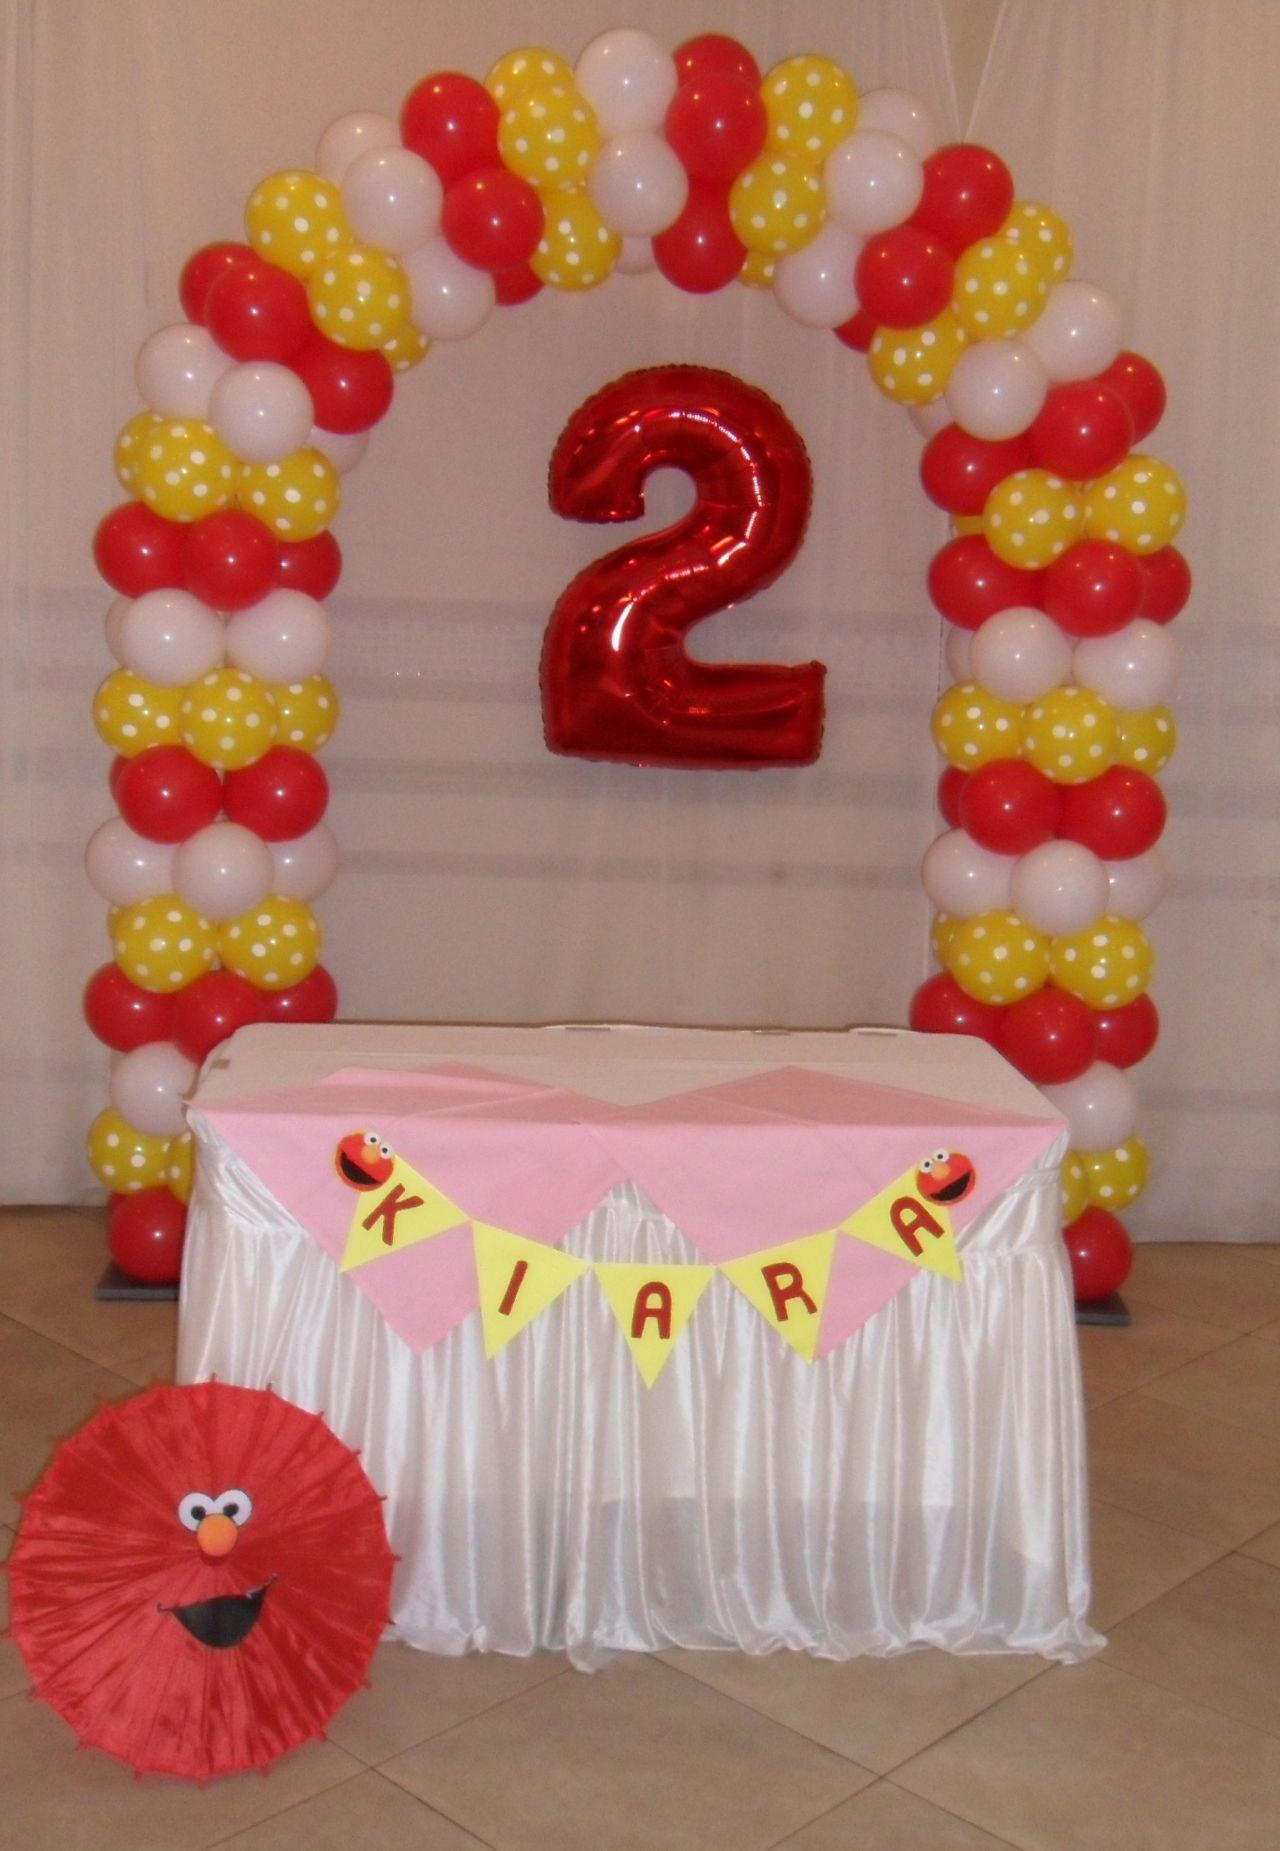 Elmo red yellow polka dot and white balloon arch for girl